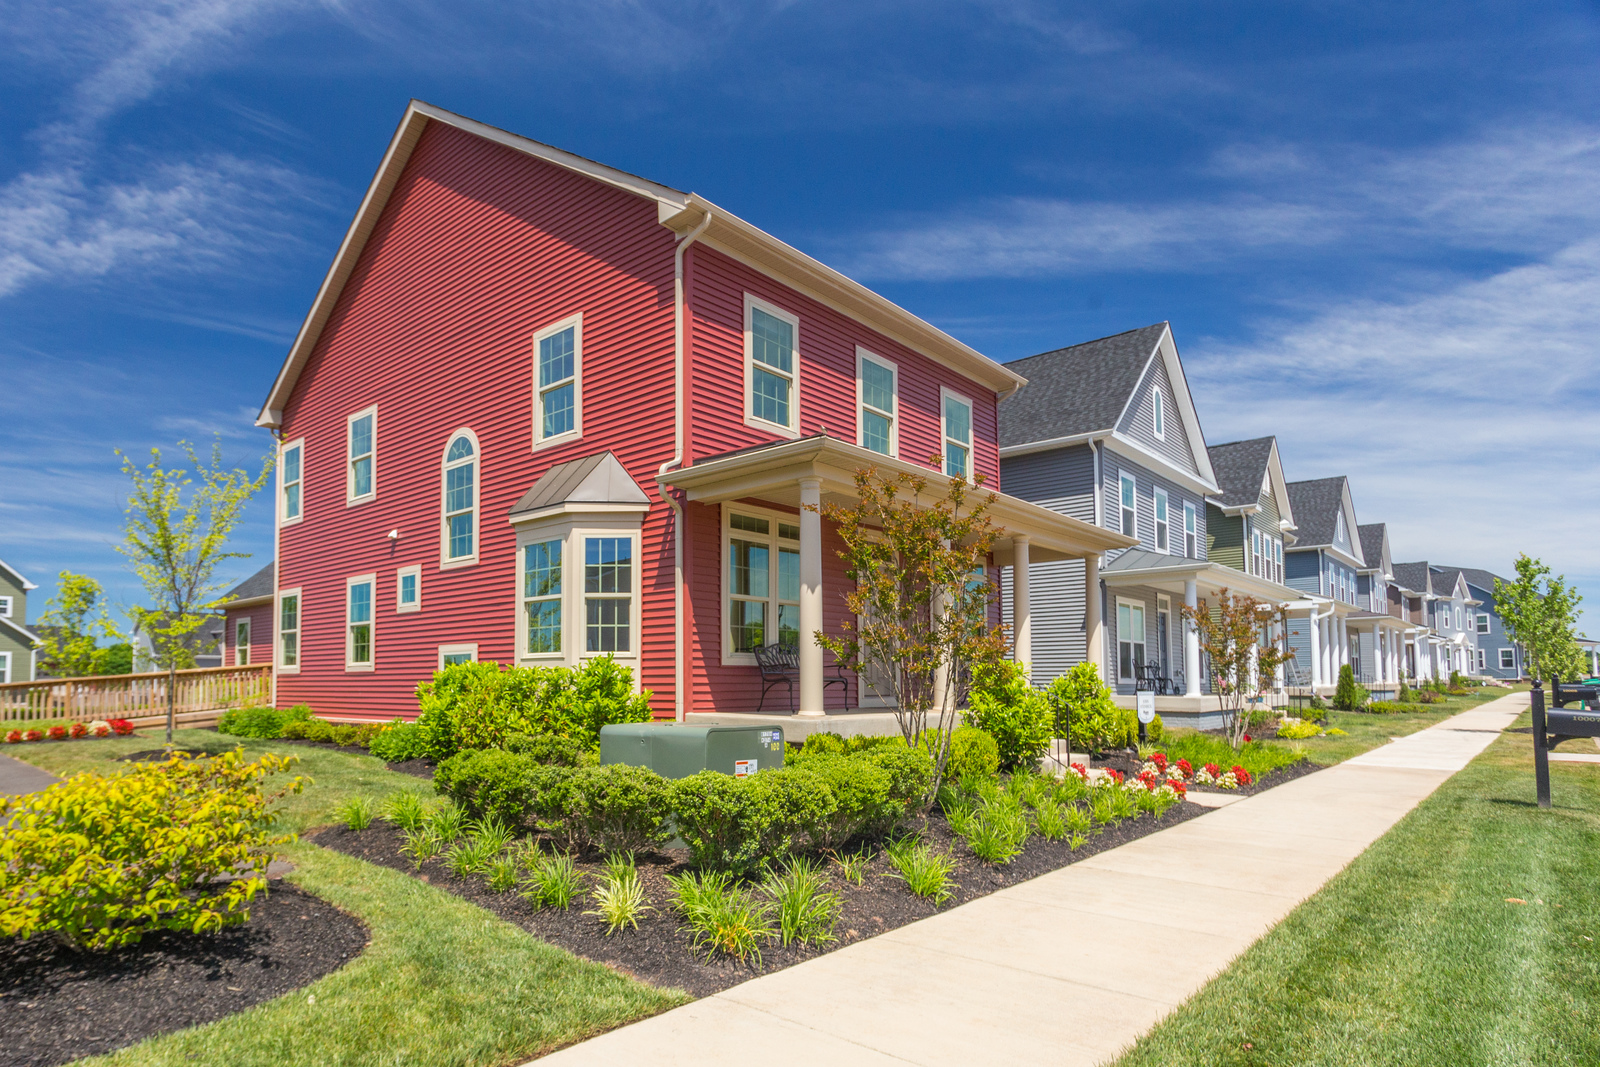 New Homes For Sale At Mintbrook Single Family Homes In